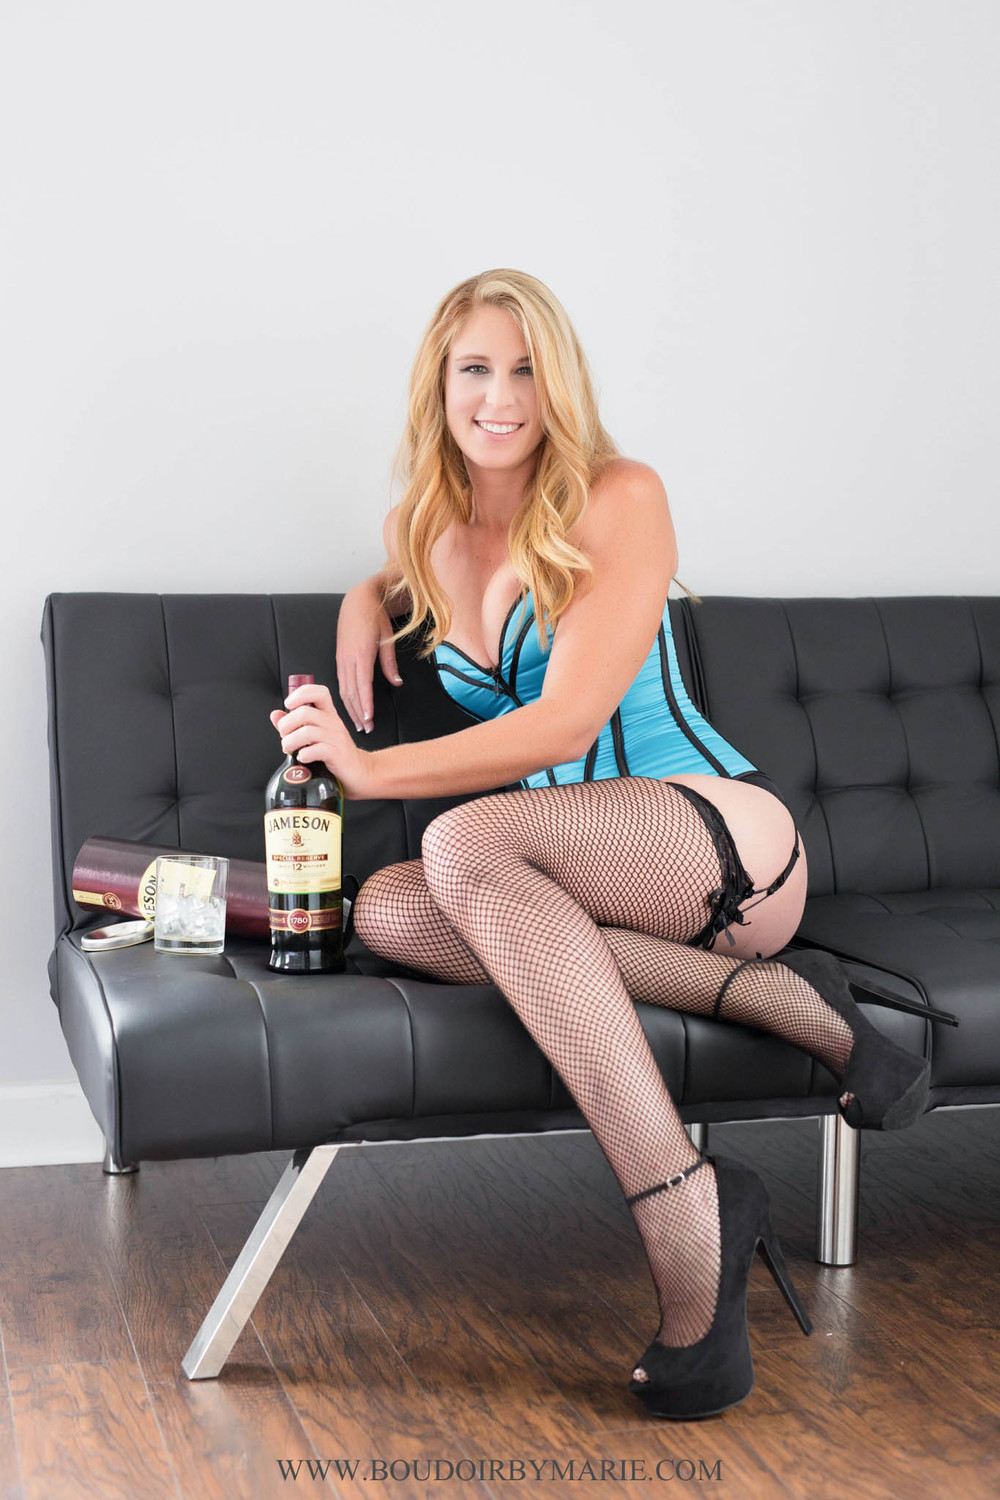 Fun boudoir props - Jameson whiskey for boudoir photo session